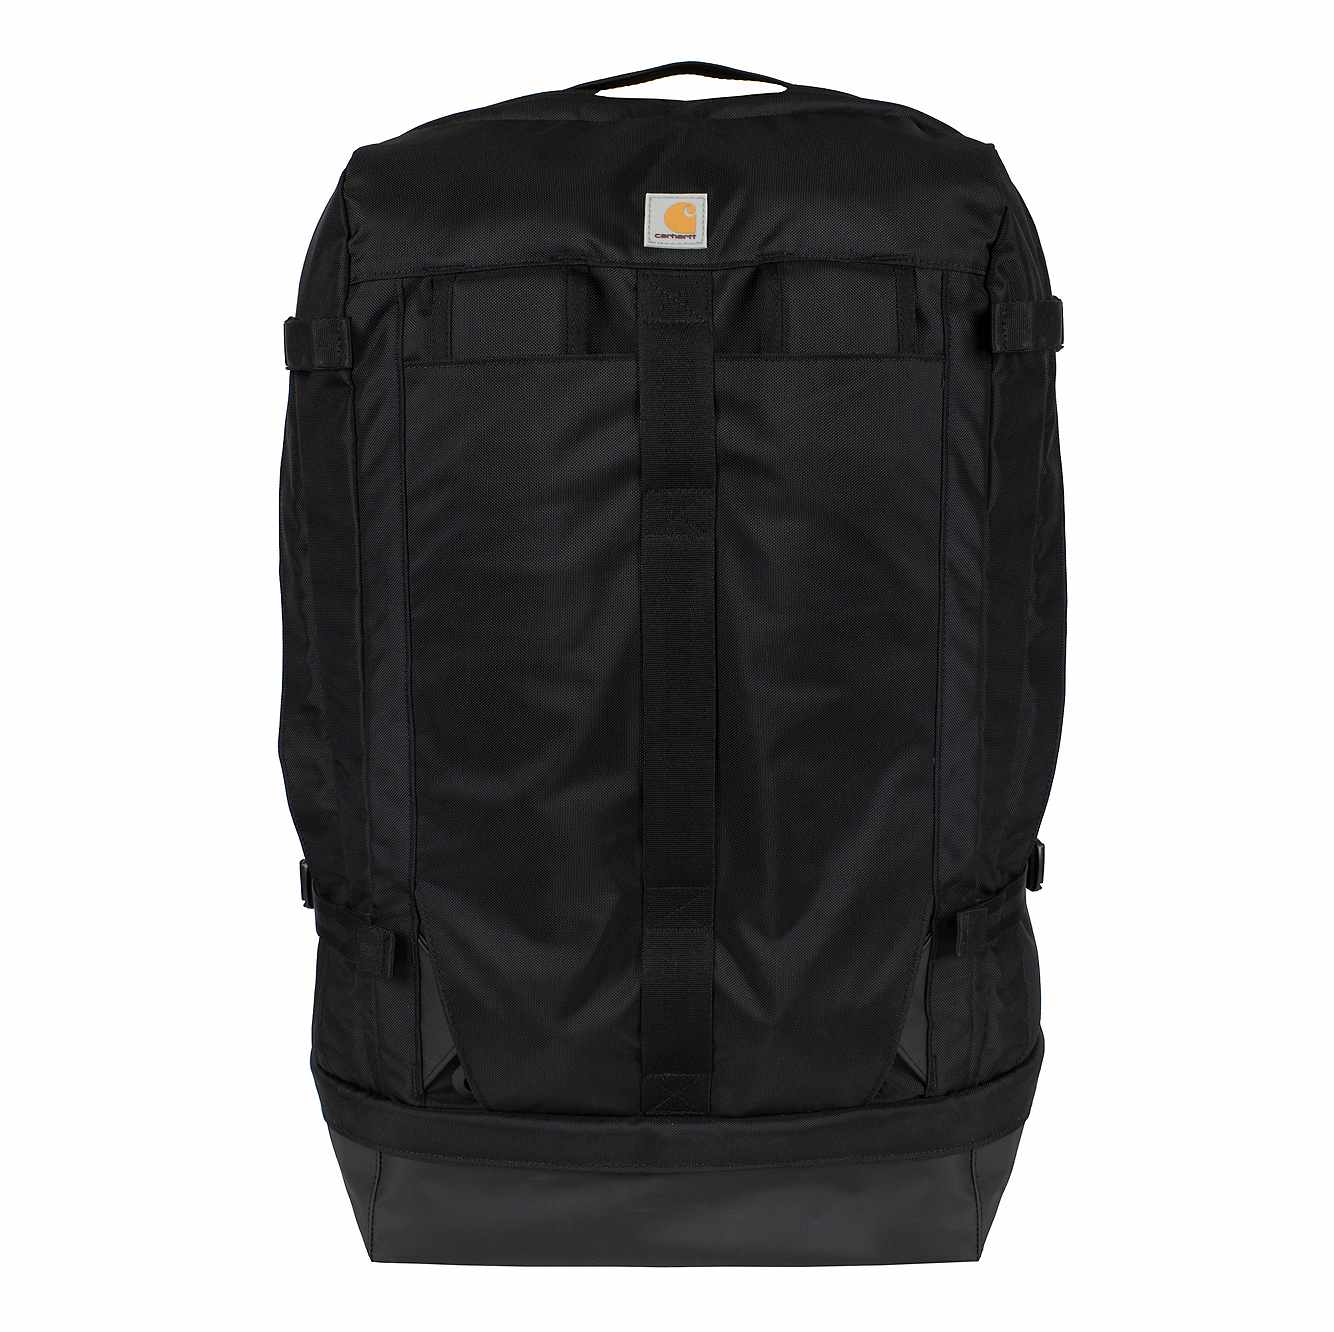 Picture of Elements 2.0 Duffel / Backpack Hybrid in Black